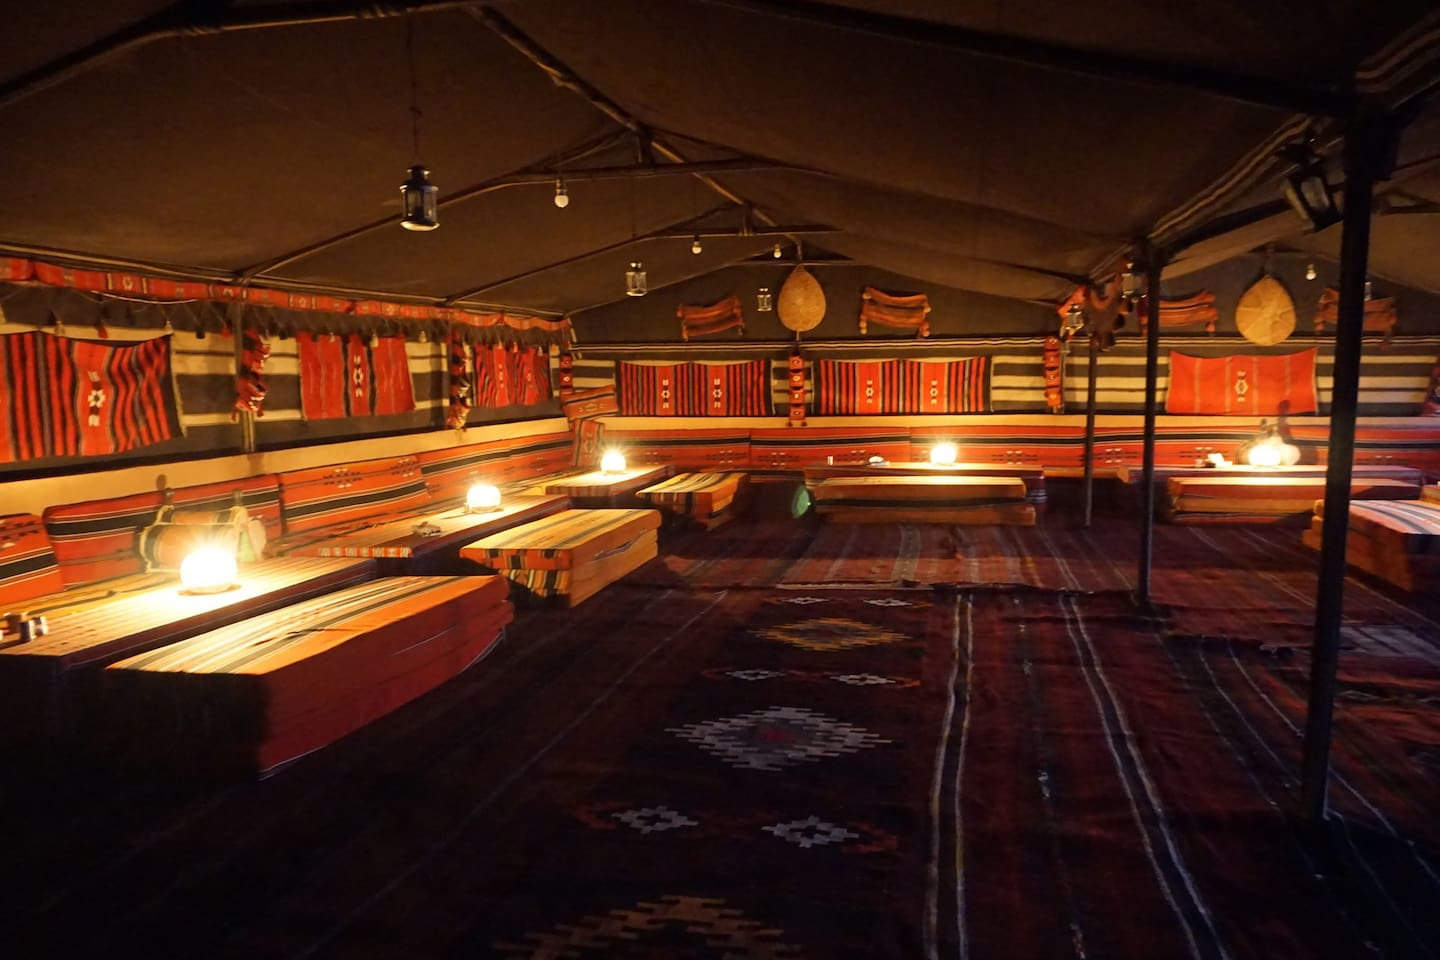 The communal tent where we socialize, serve meals, and drink Bedouin tea around the fire.